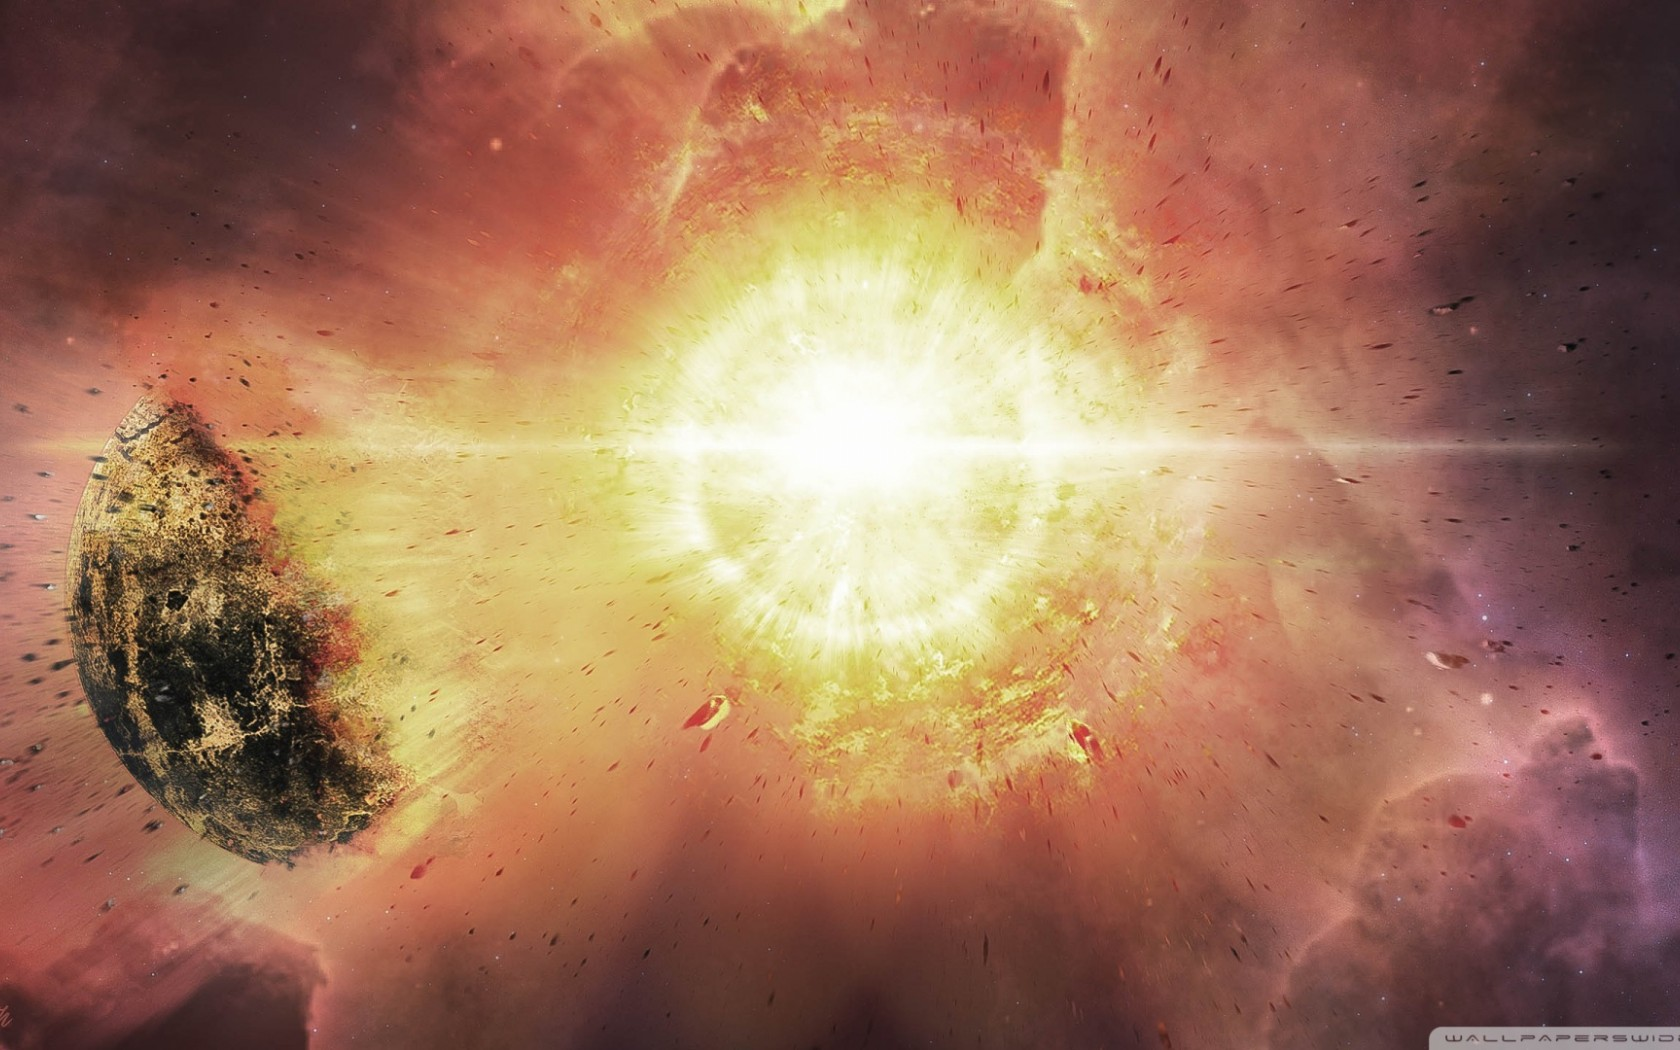 Free Download Supernova Hd Wallpaper for Desktop and Mobiles